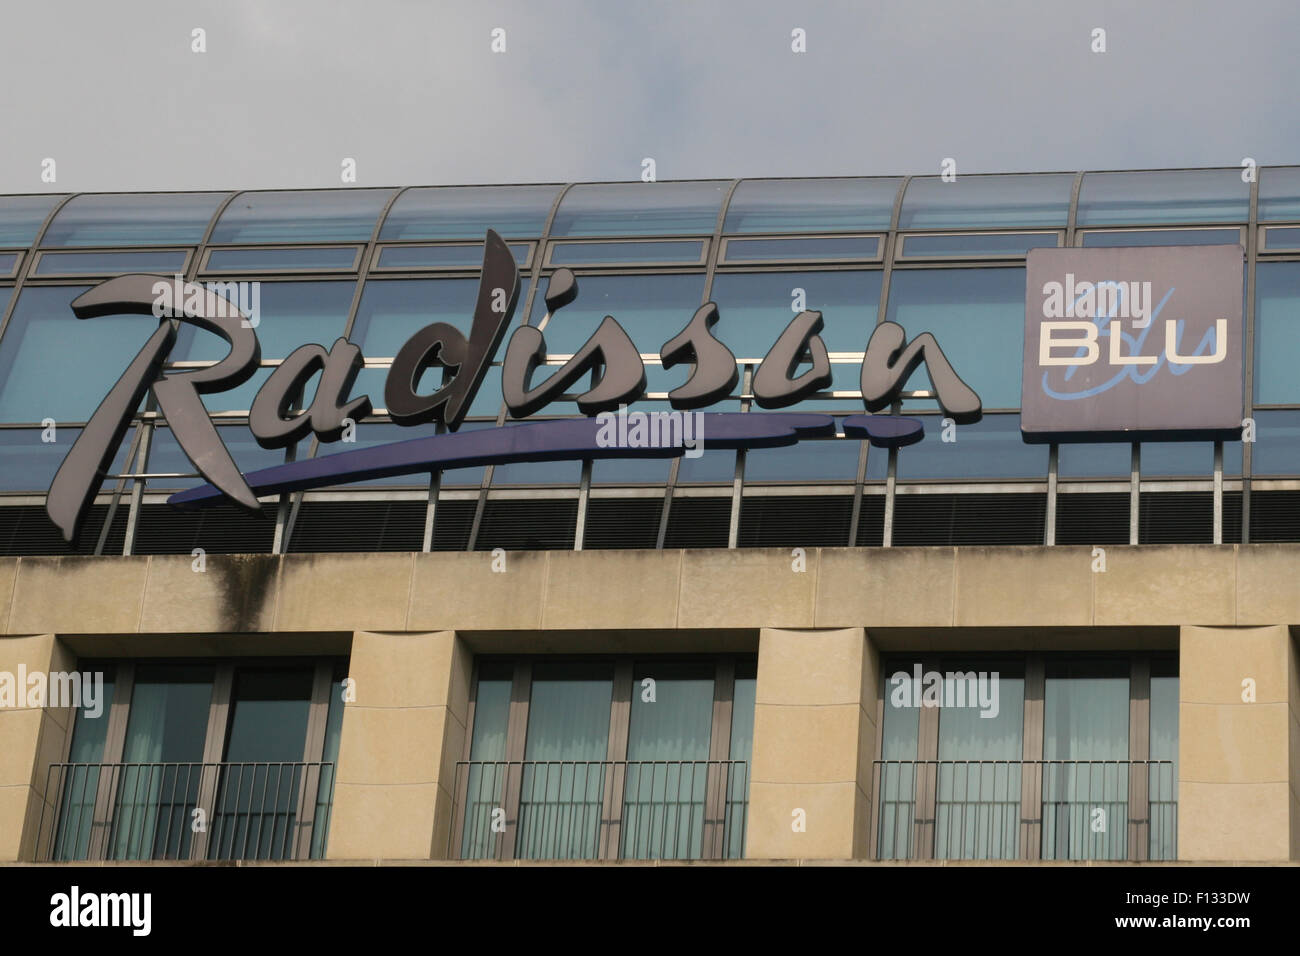 RADISSON BLU BERLIN GERMANY - Stock Image